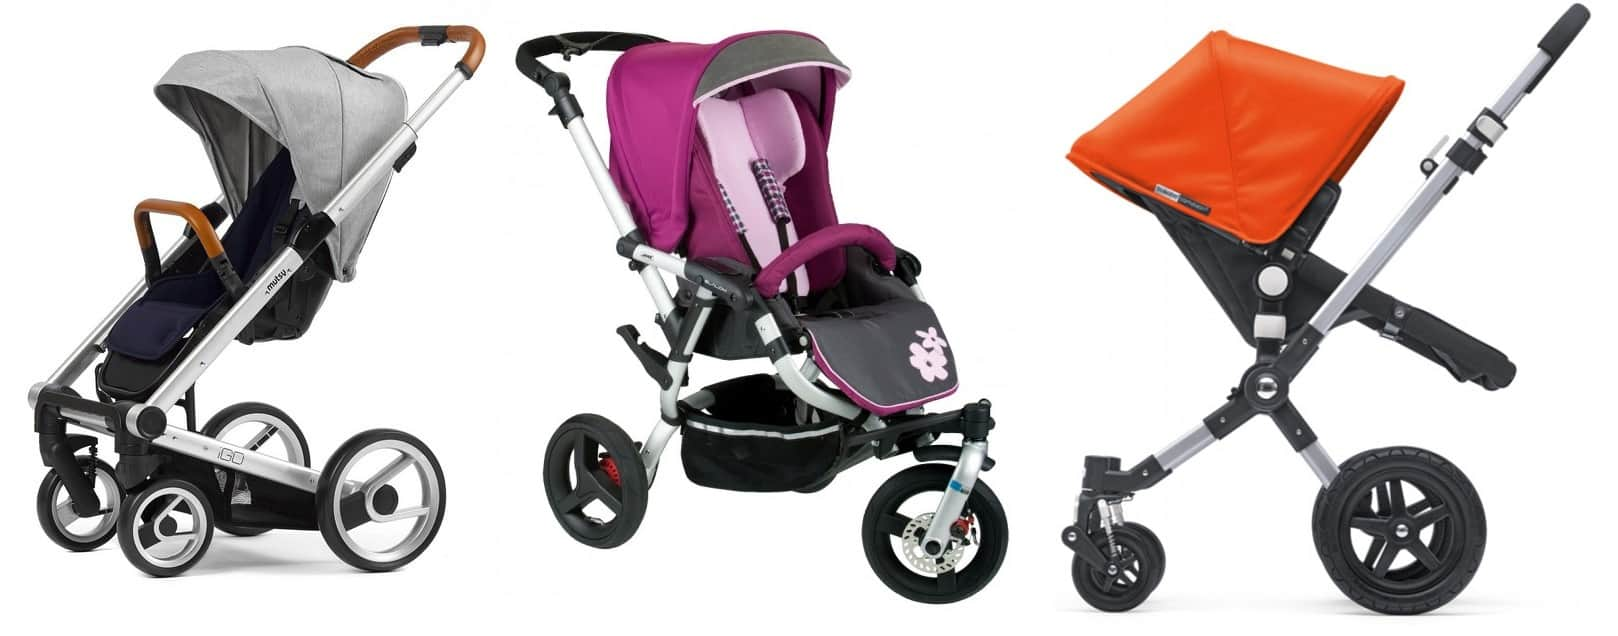 So if you are ready to buy a stroller, check out our product picks, where you'll find important details about the best strollers on the market. But if you want to learn more about choosing and using strollers in general, read on. Baby, get ready. It's time to get rolling.